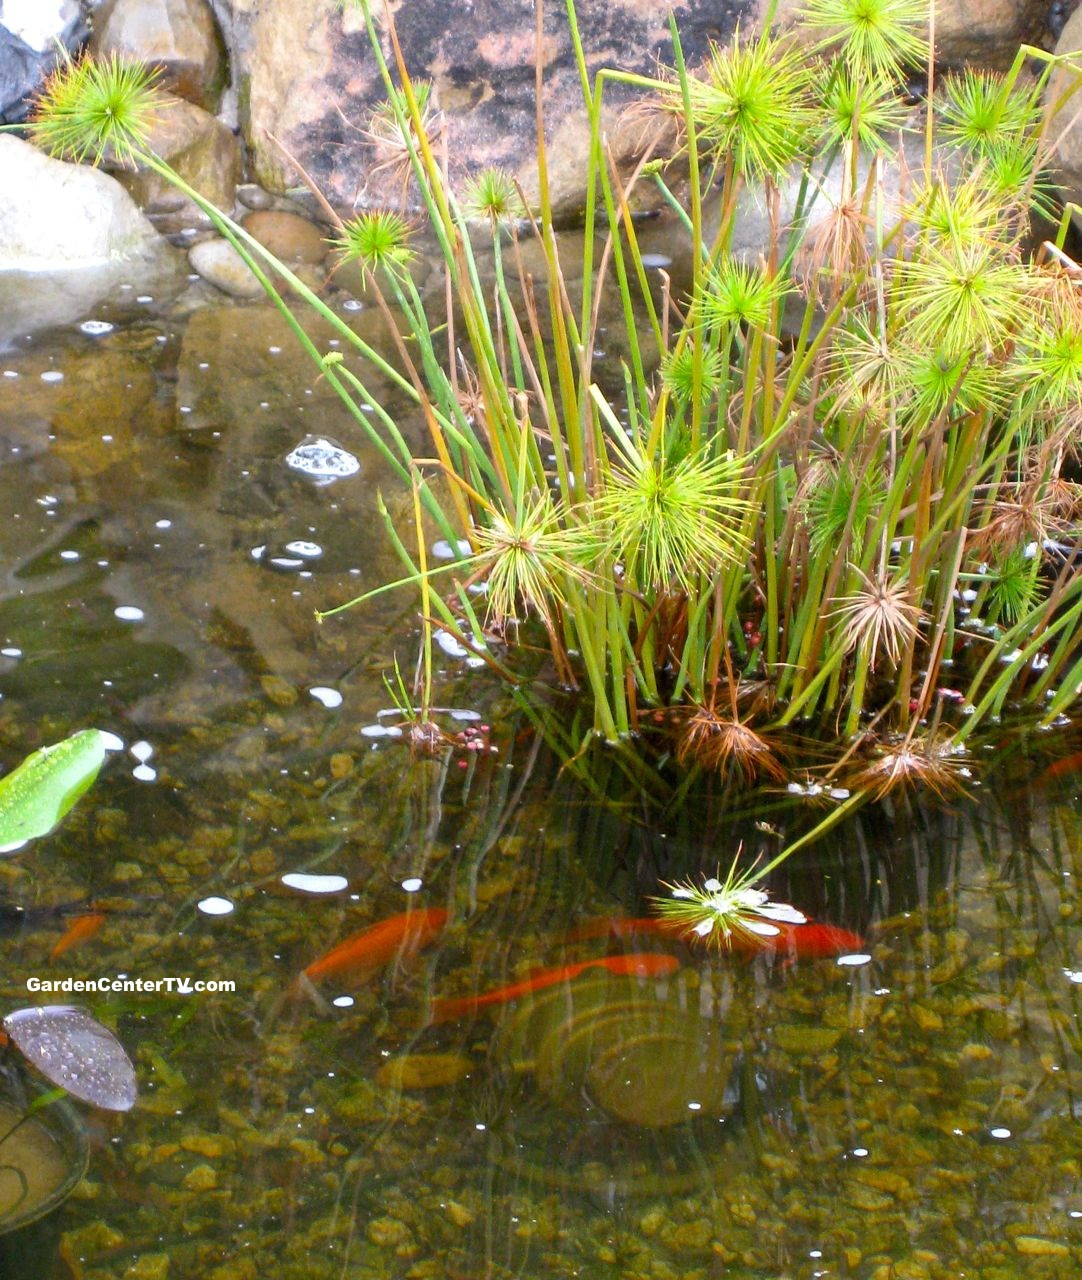 Papayrus plant in pond with koi fish garden center tv for Backyard pond plants and fish